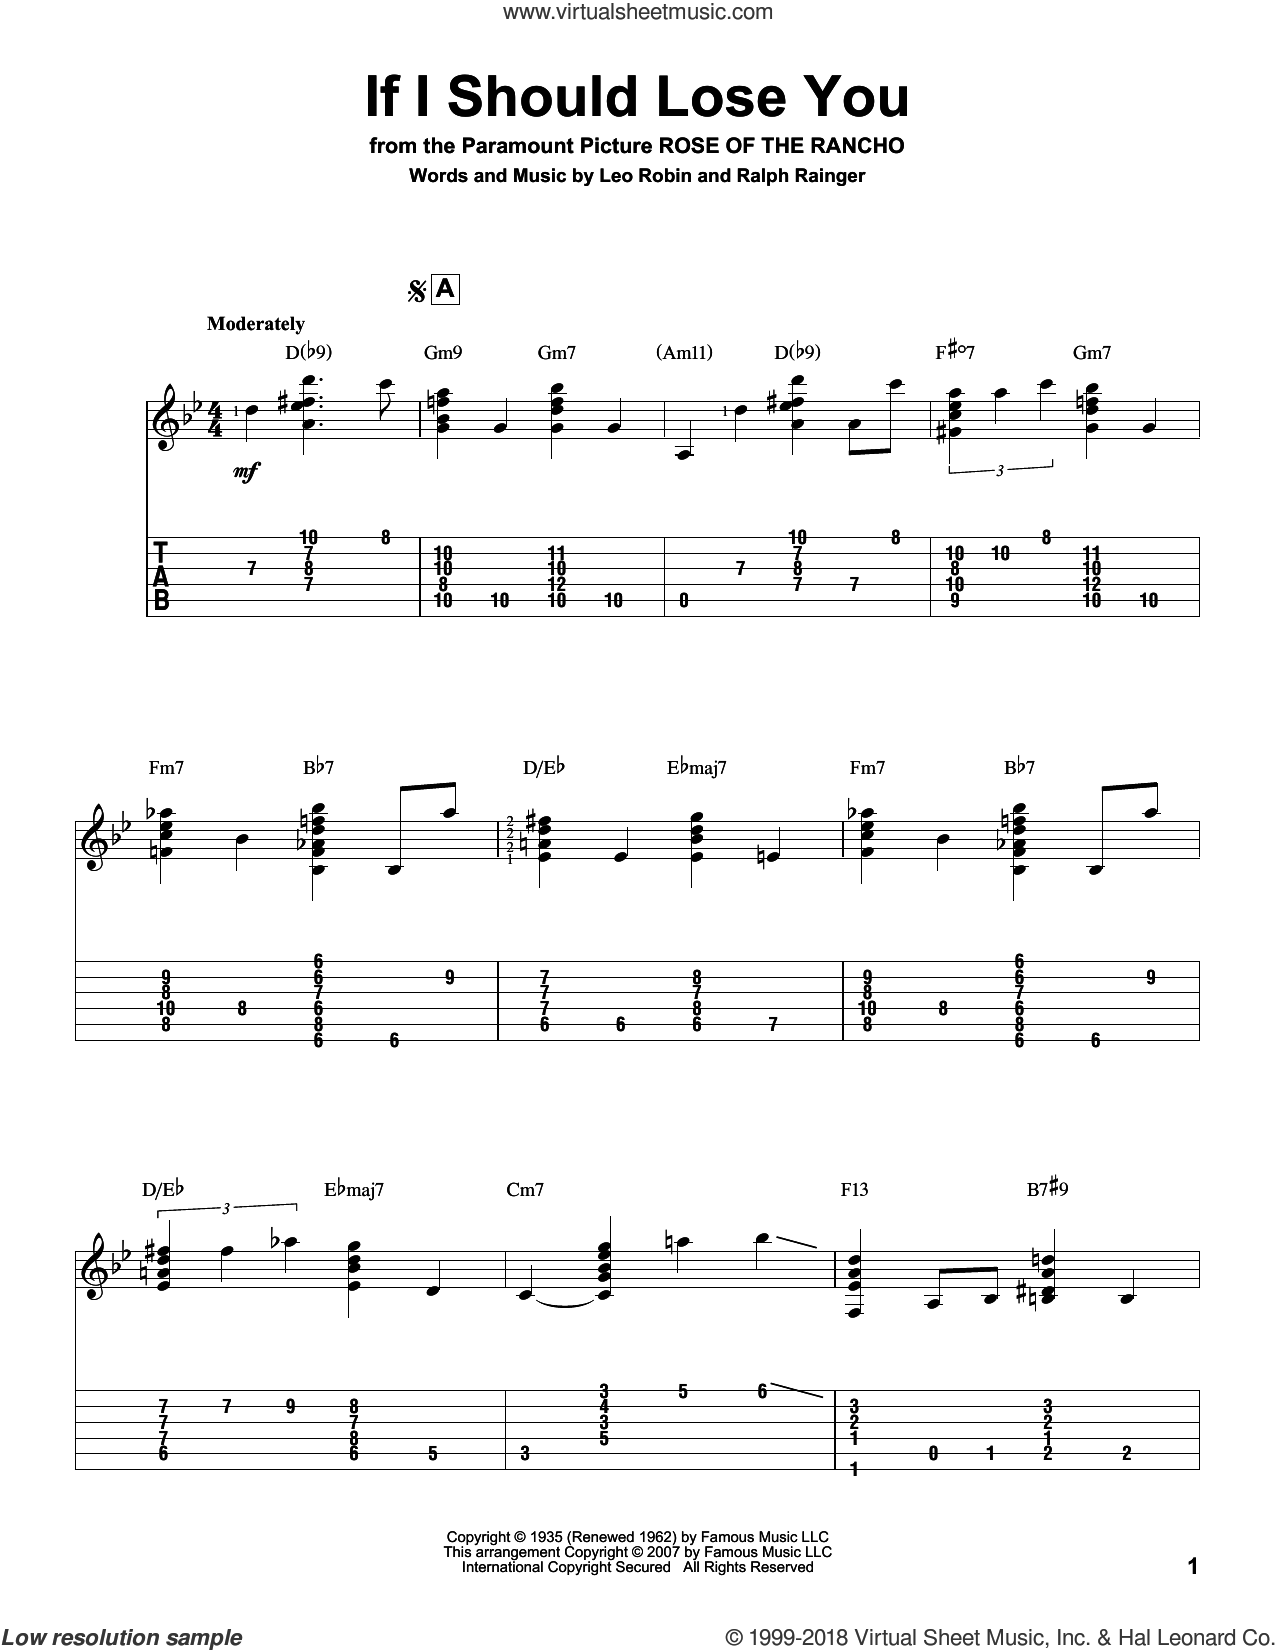 If I Should Lose You sheet music for guitar solo by Leo Robin